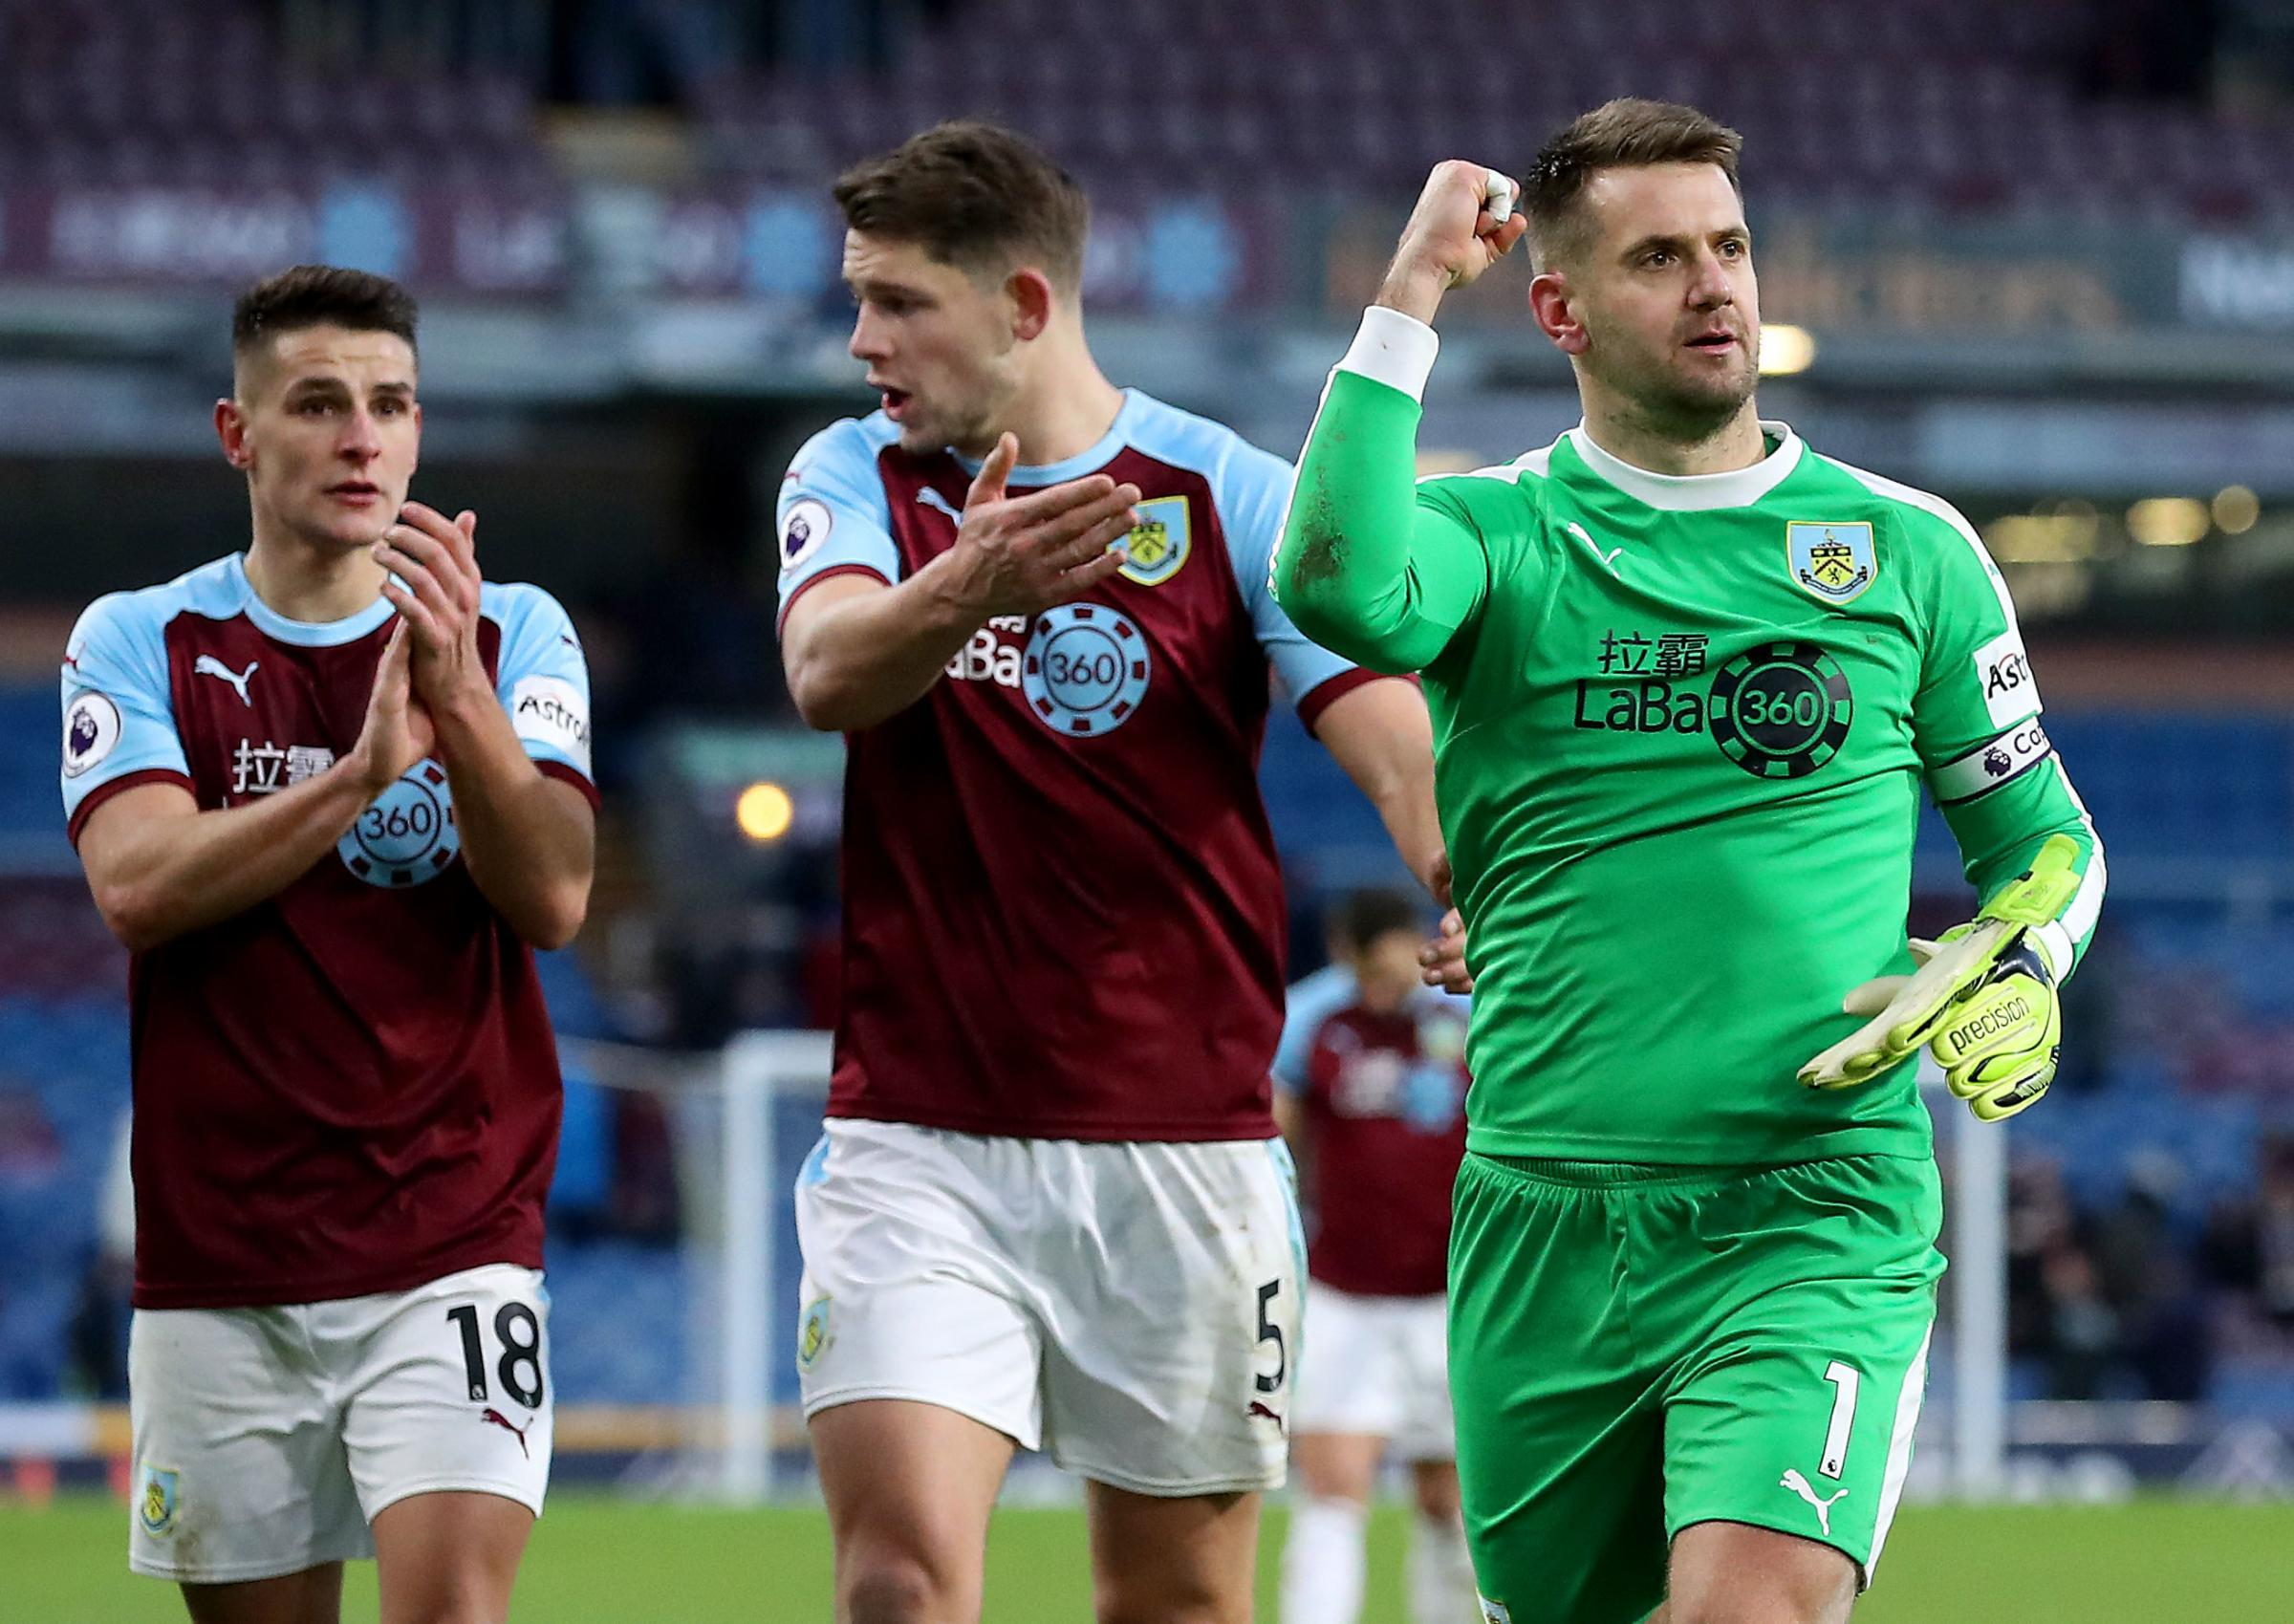 Burnley's Ashley Westwood (left) and James Tarkowski (centre) as Tom Heaton (right) celebrates the point after the Premier League match at Turf Moor, Burnley. PRESS ASSOCIATION Photo. Picture date: Saturday February 2, 2019. See PA story SOCCER Burnl